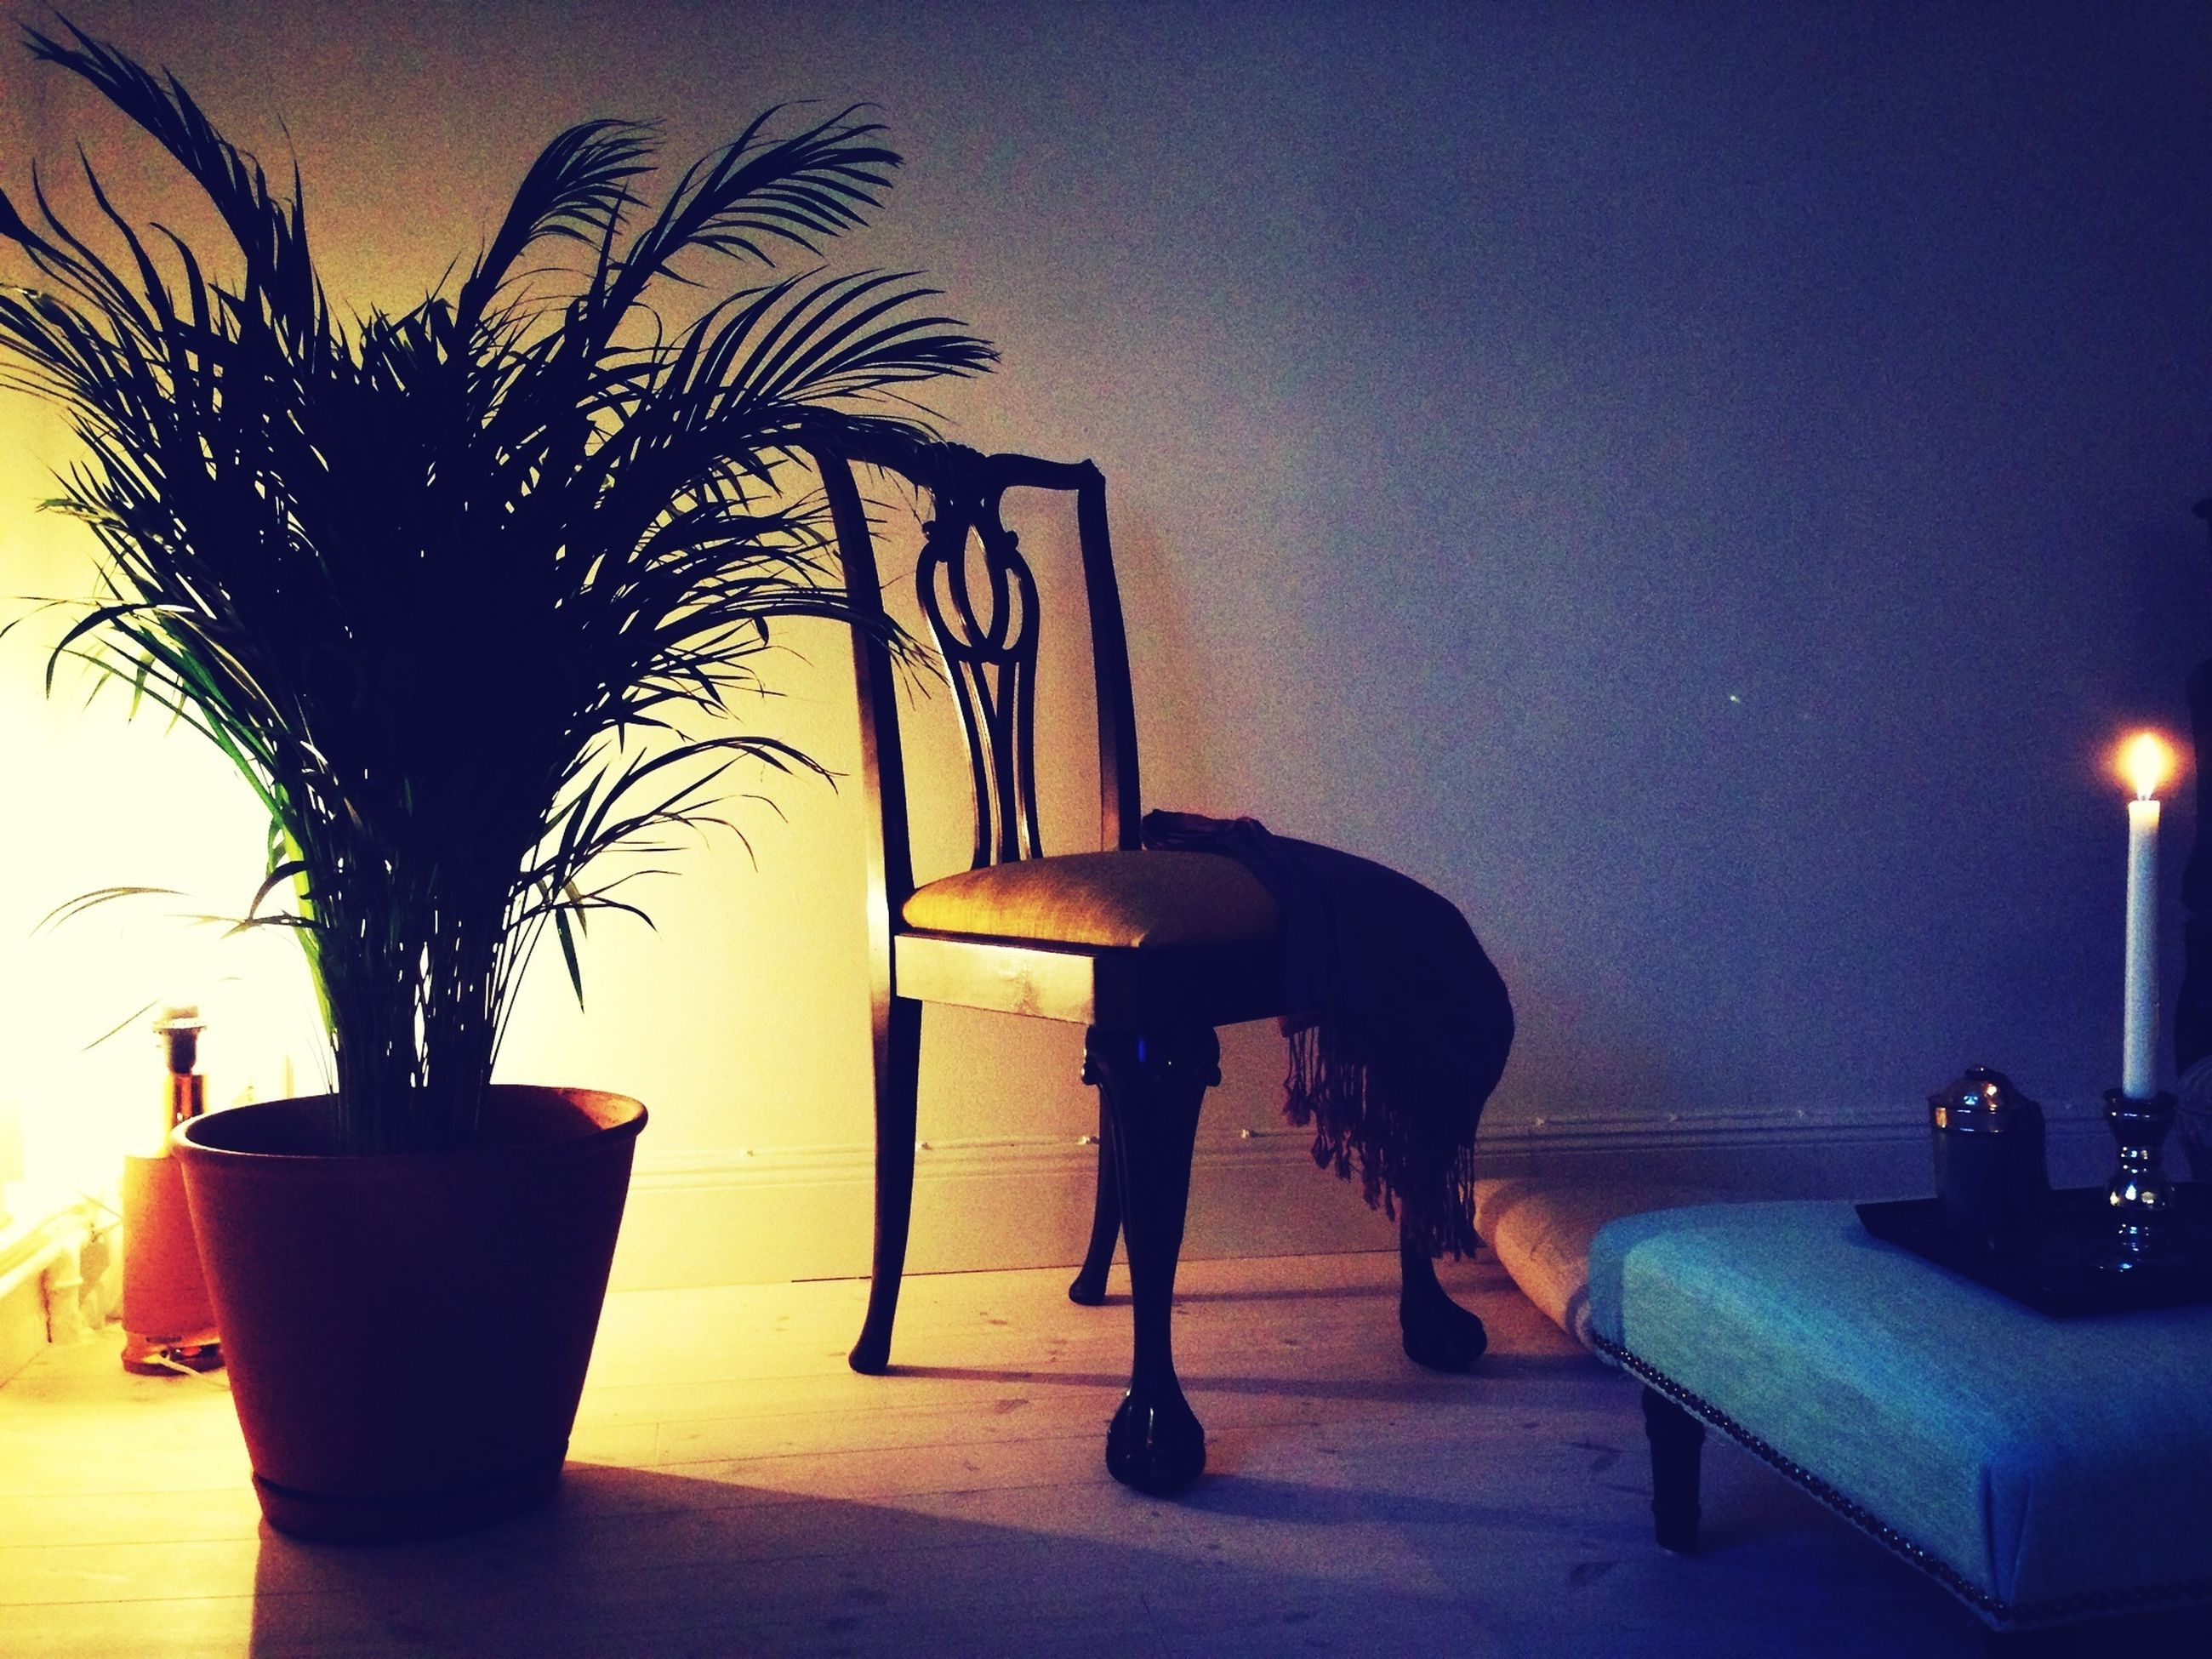 illuminated, indoors, table, domestic animals, potted plant, animal themes, palm tree, one animal, lighting equipment, chair, home interior, pets, silhouette, copy space, mammal, no people, night, sky, built structure, house